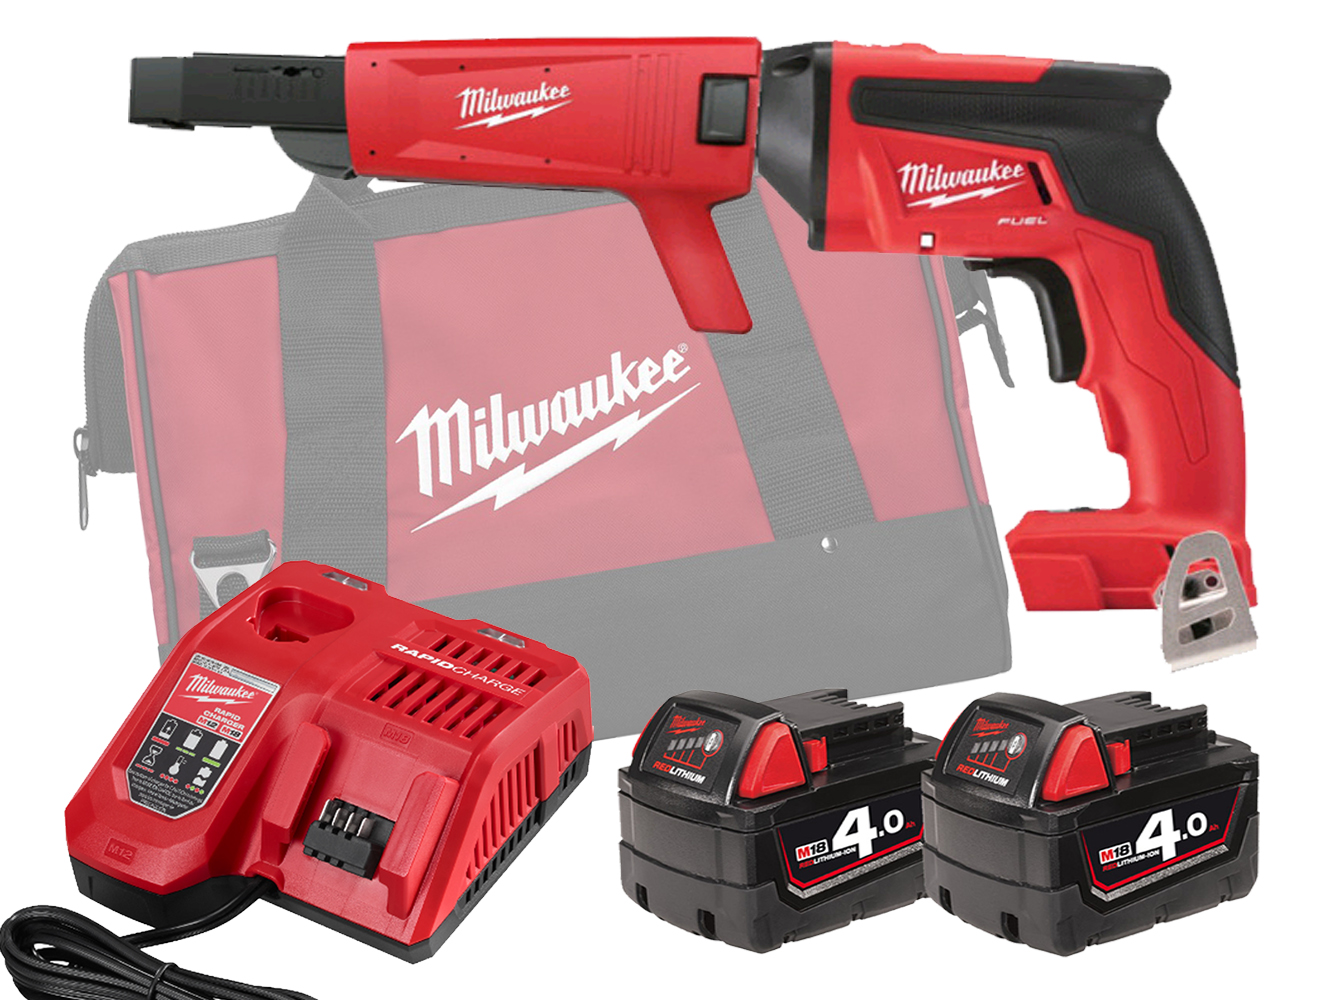 Milwaukee M18FSGC 18V Fuel Screw Gun With Collated Attachment - 4.0Ah Pack